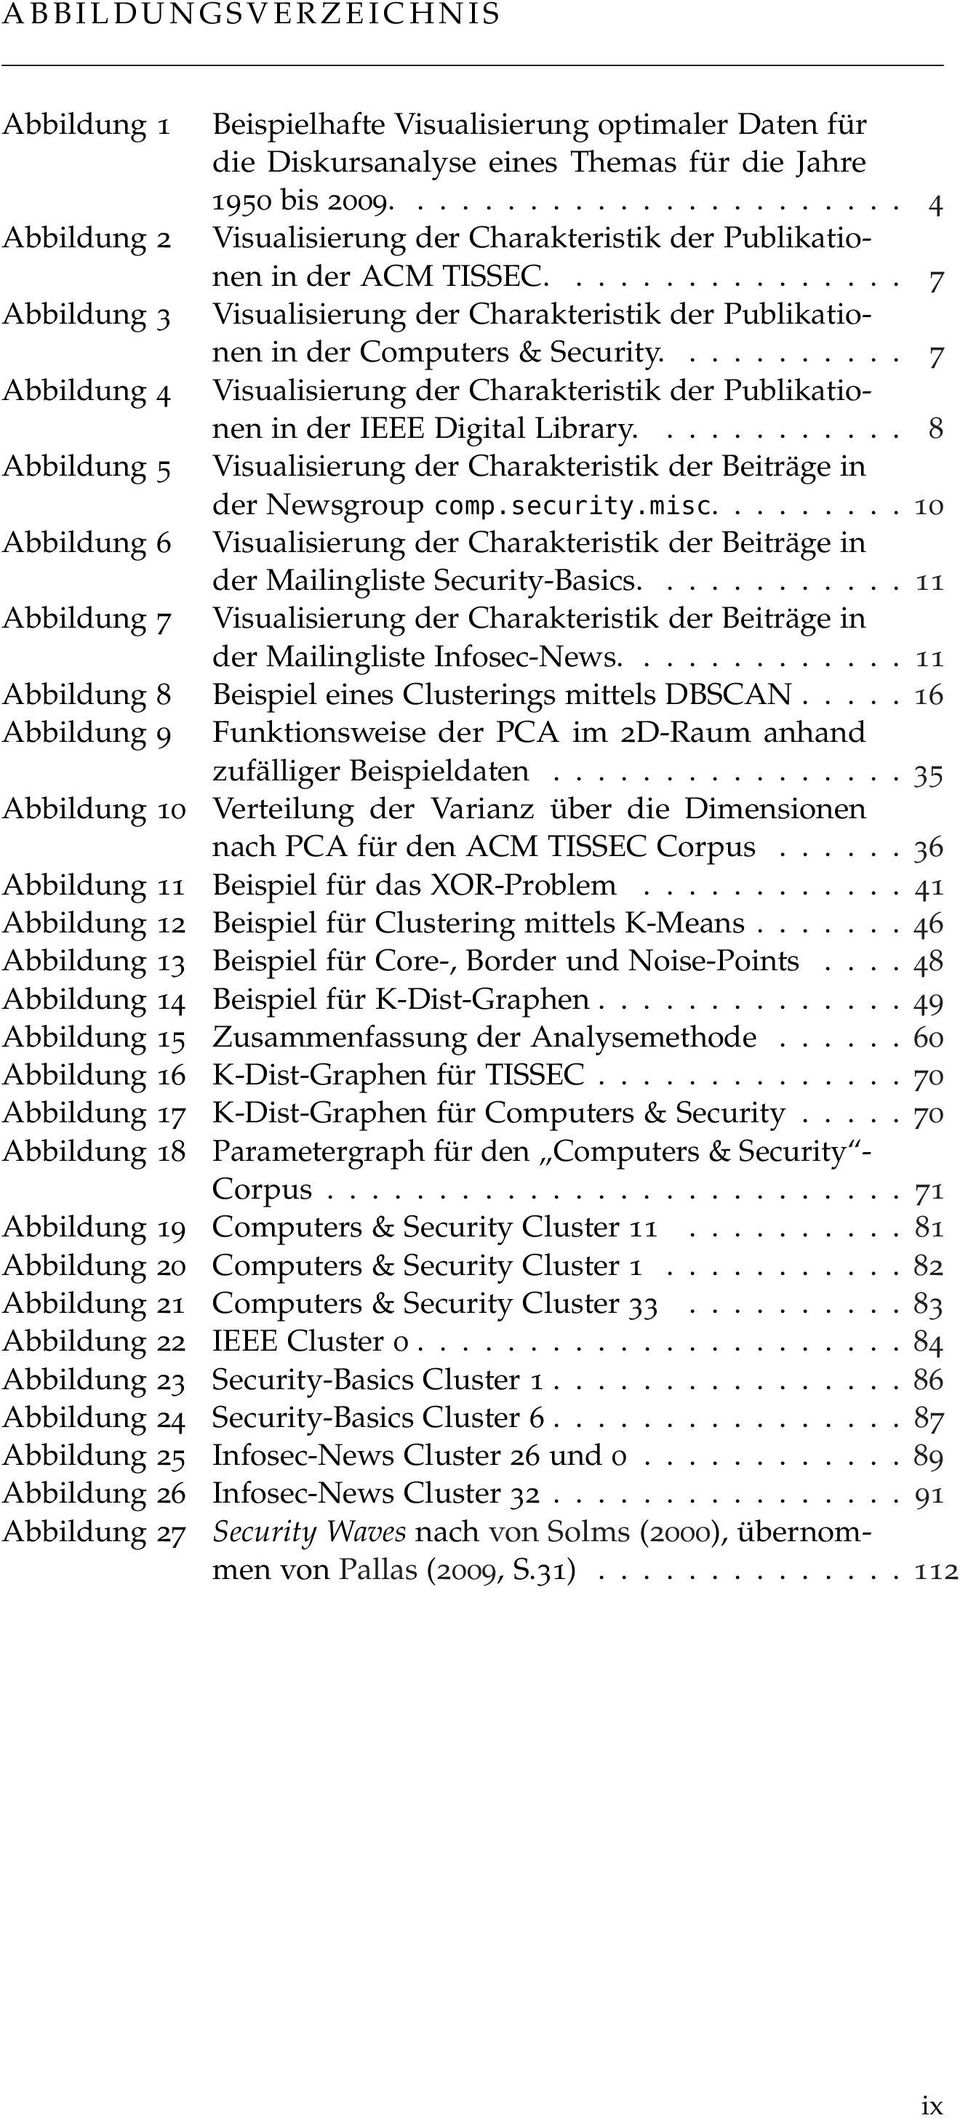 ............... 7 Abbildung 3 Visualisierung der Charakteristik der Publikationen in der Computers & Security.